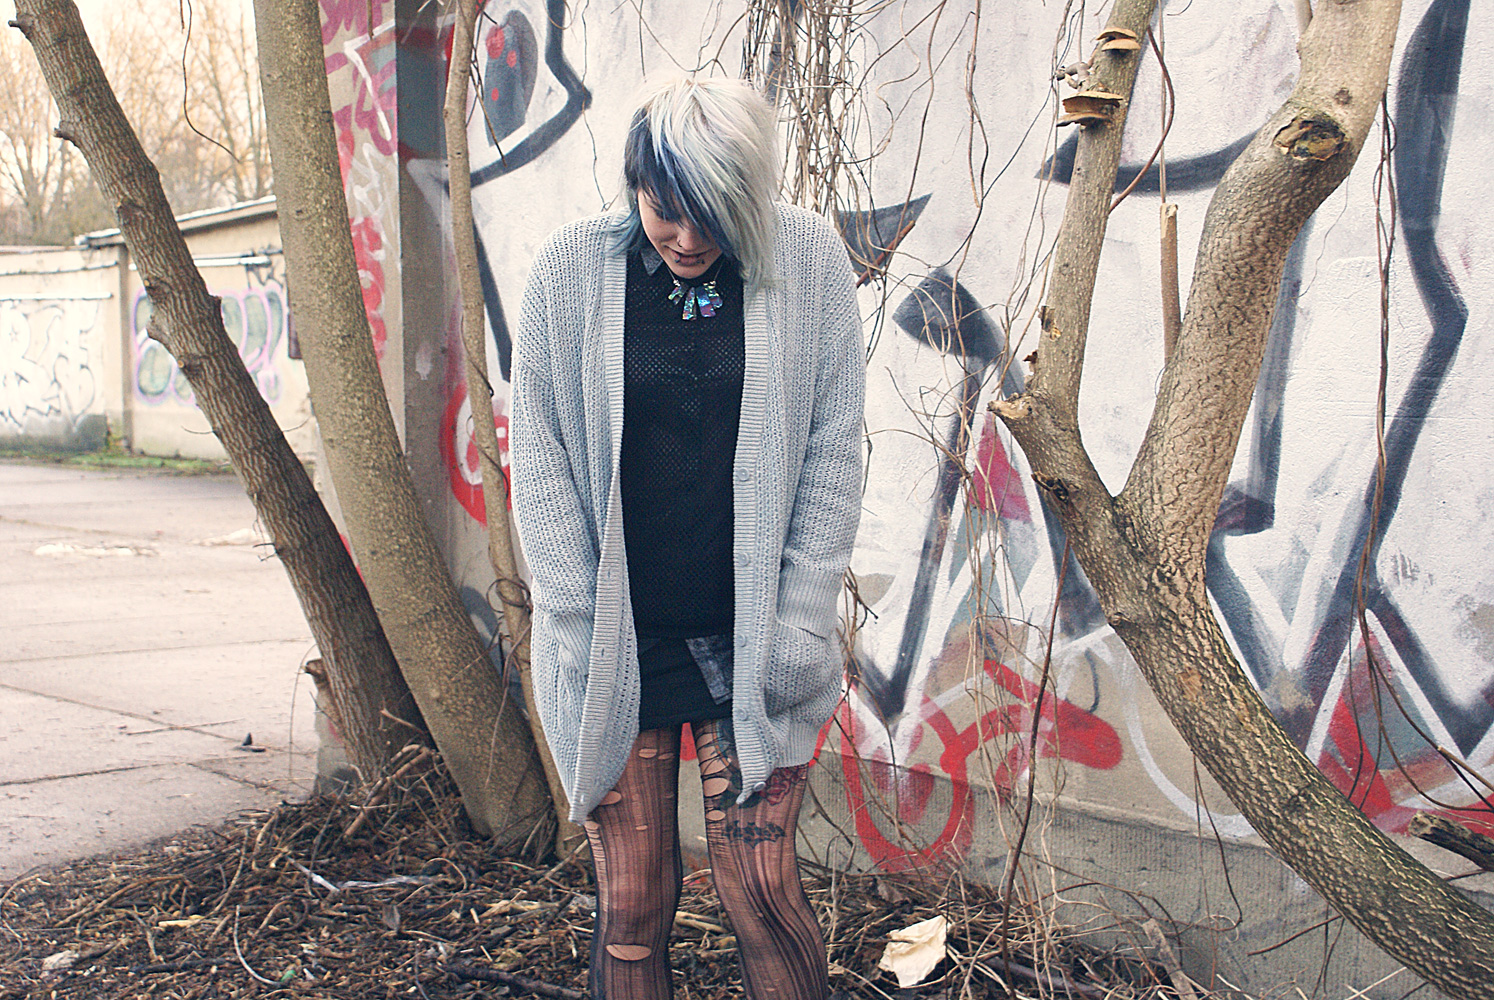 alternative altfashion outfit urban outfitters cardigan bdg netzpulli new yorker american apparel button up shirt dress tattoo cat katze strick knit punk goth gothic boots sacha street super Cult of Youth shoes glitter shimmer metallic